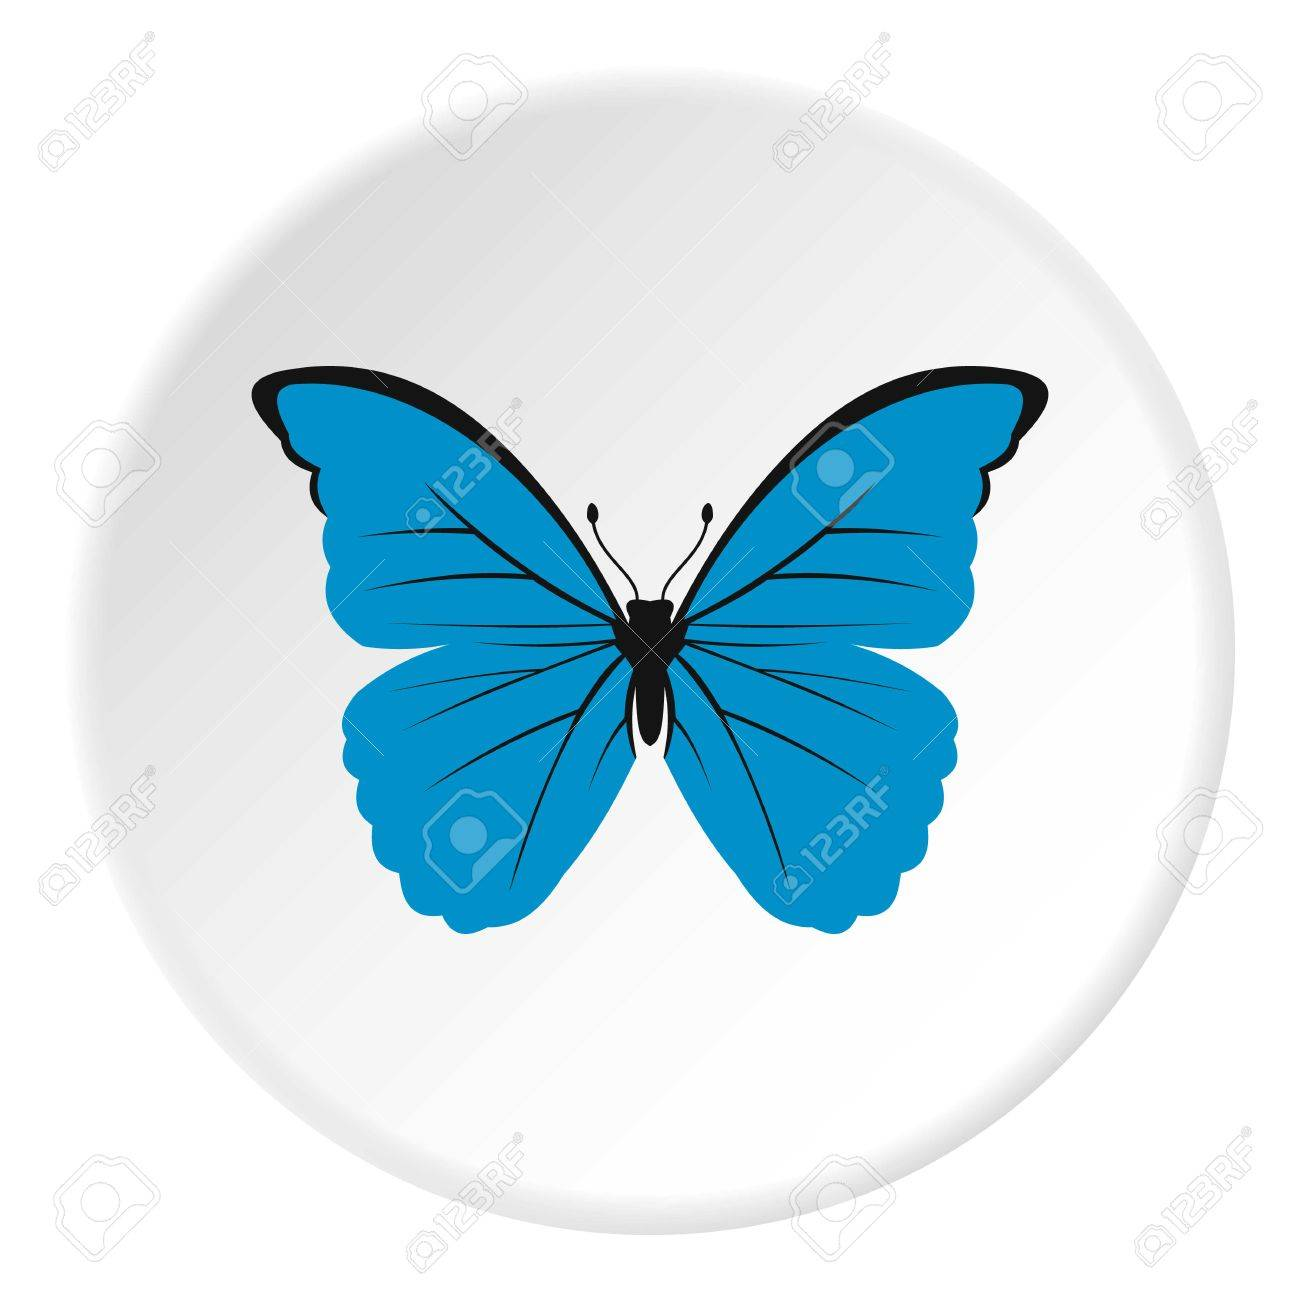 blue butterfly icon flat illustration of butterfly vector icon rh 123rf com blue butterfly vector blue butterfly vector